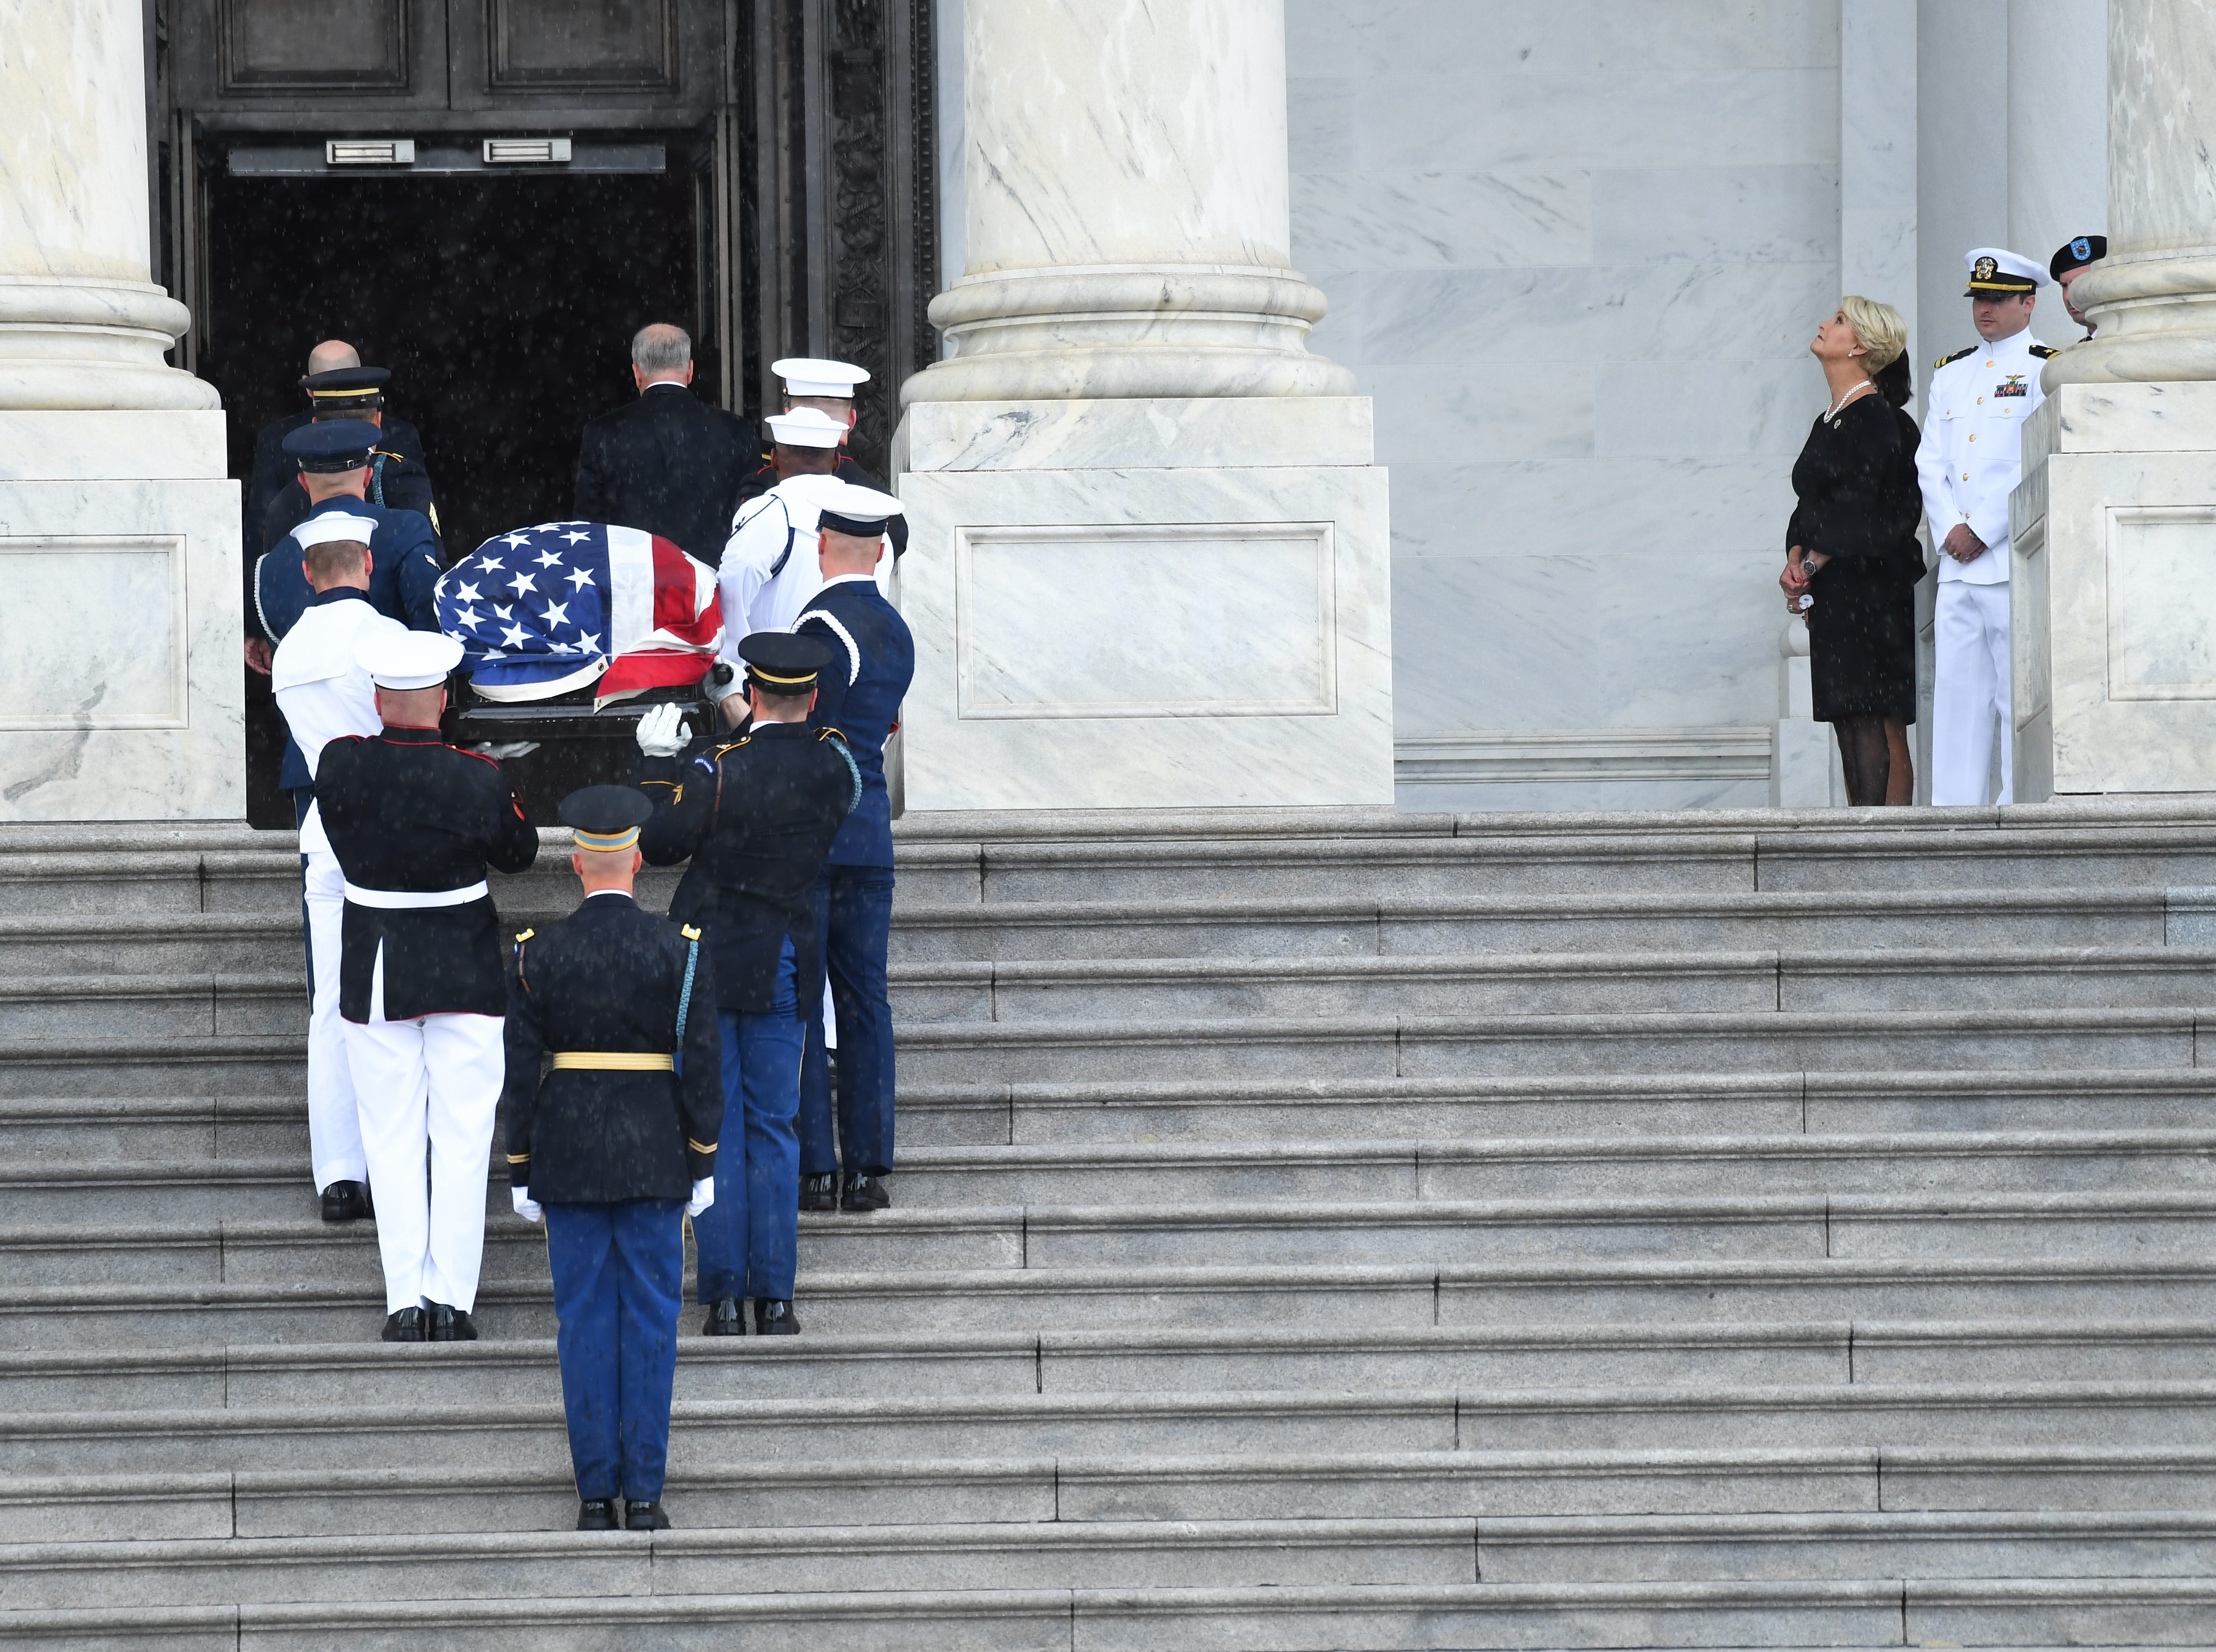 The casket of Sen. John McCain arrives at the U.S. Capitol while his wife, Cindy McCain, looks skyward and their two sons Jack and Jimmy McCain look on on Aug. 31, 2018.